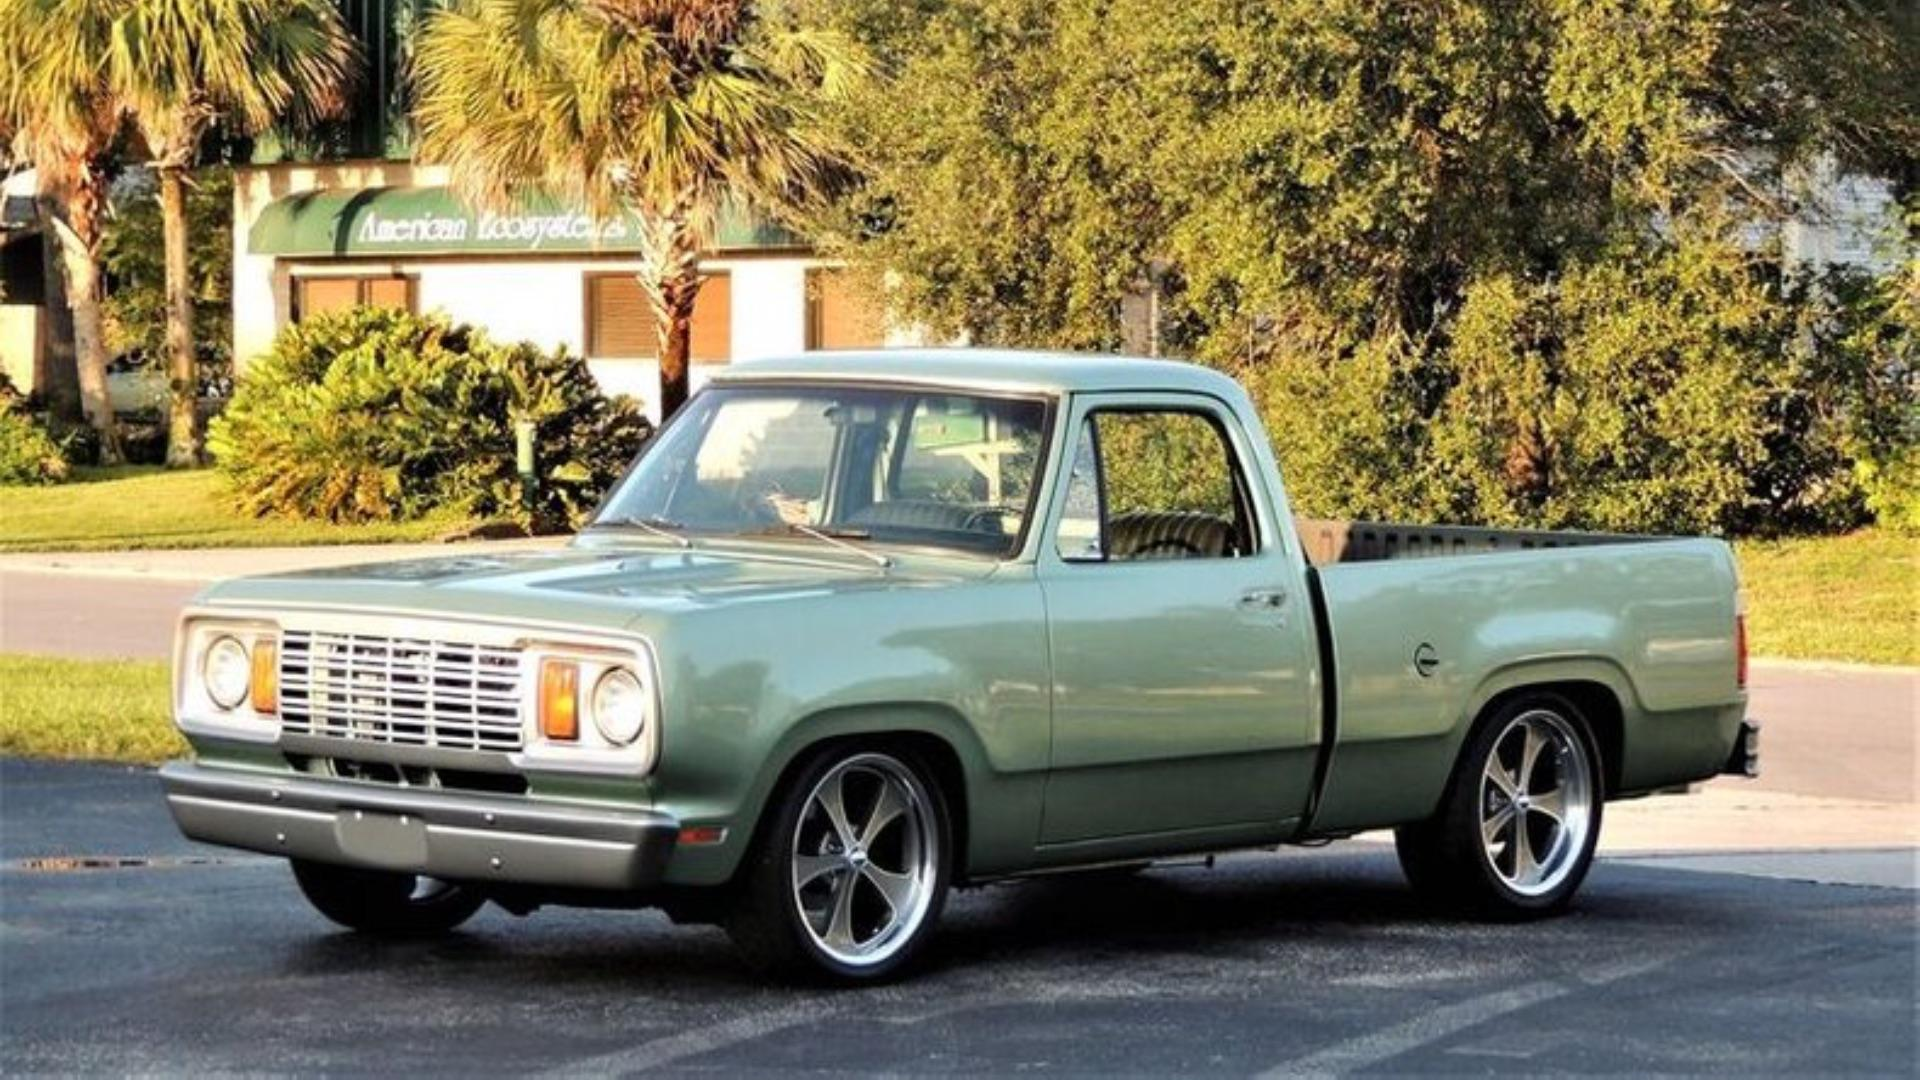 Top 10 Trucks Headed to GAA's Upcoming Auction